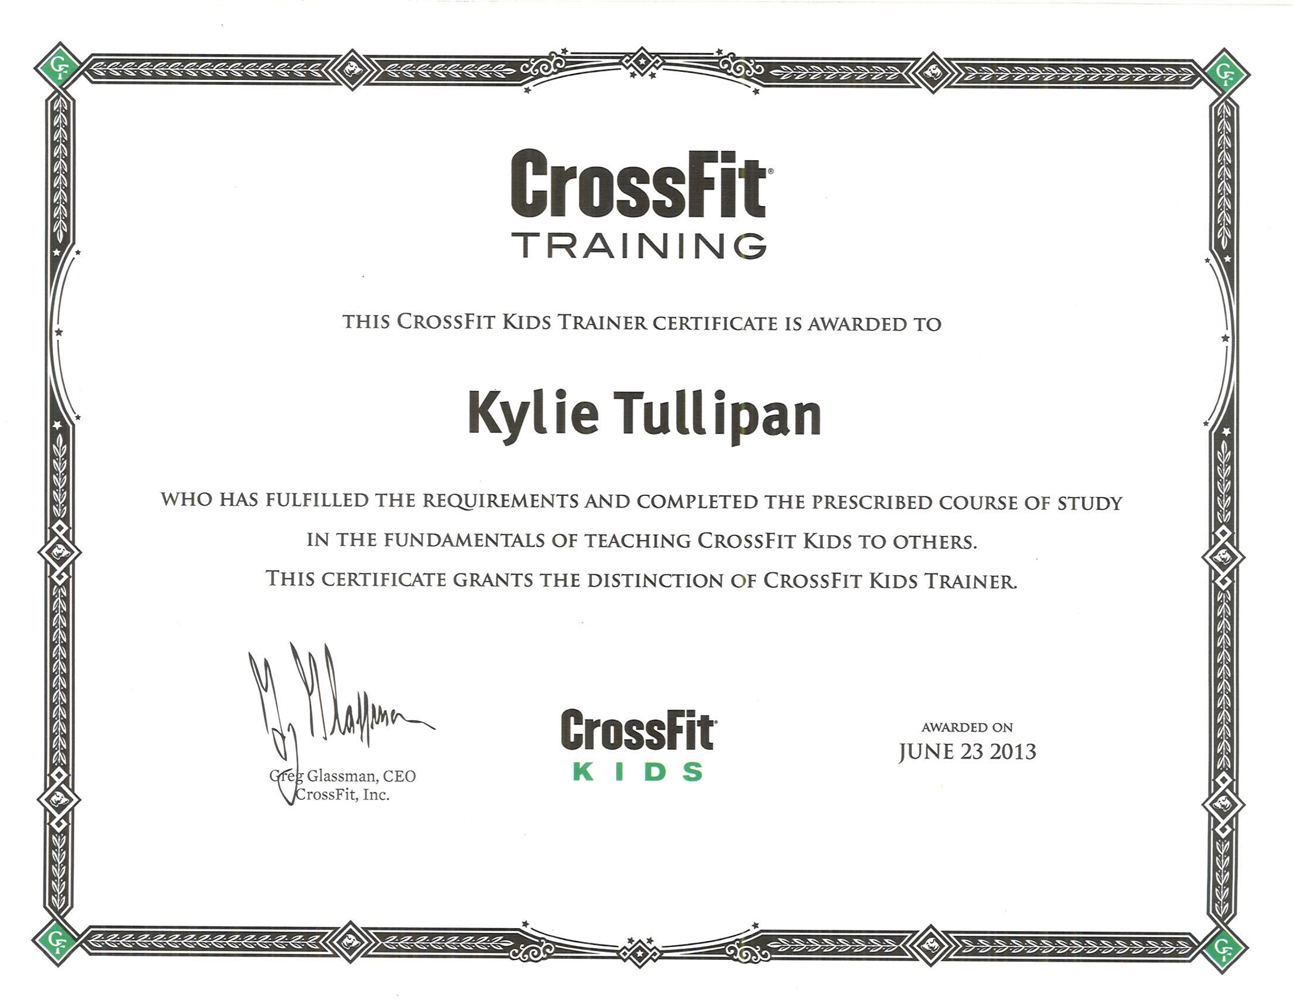 CrossFIt-Kids-and-Level-1-certificates---Kylie-Tullipan-2-2